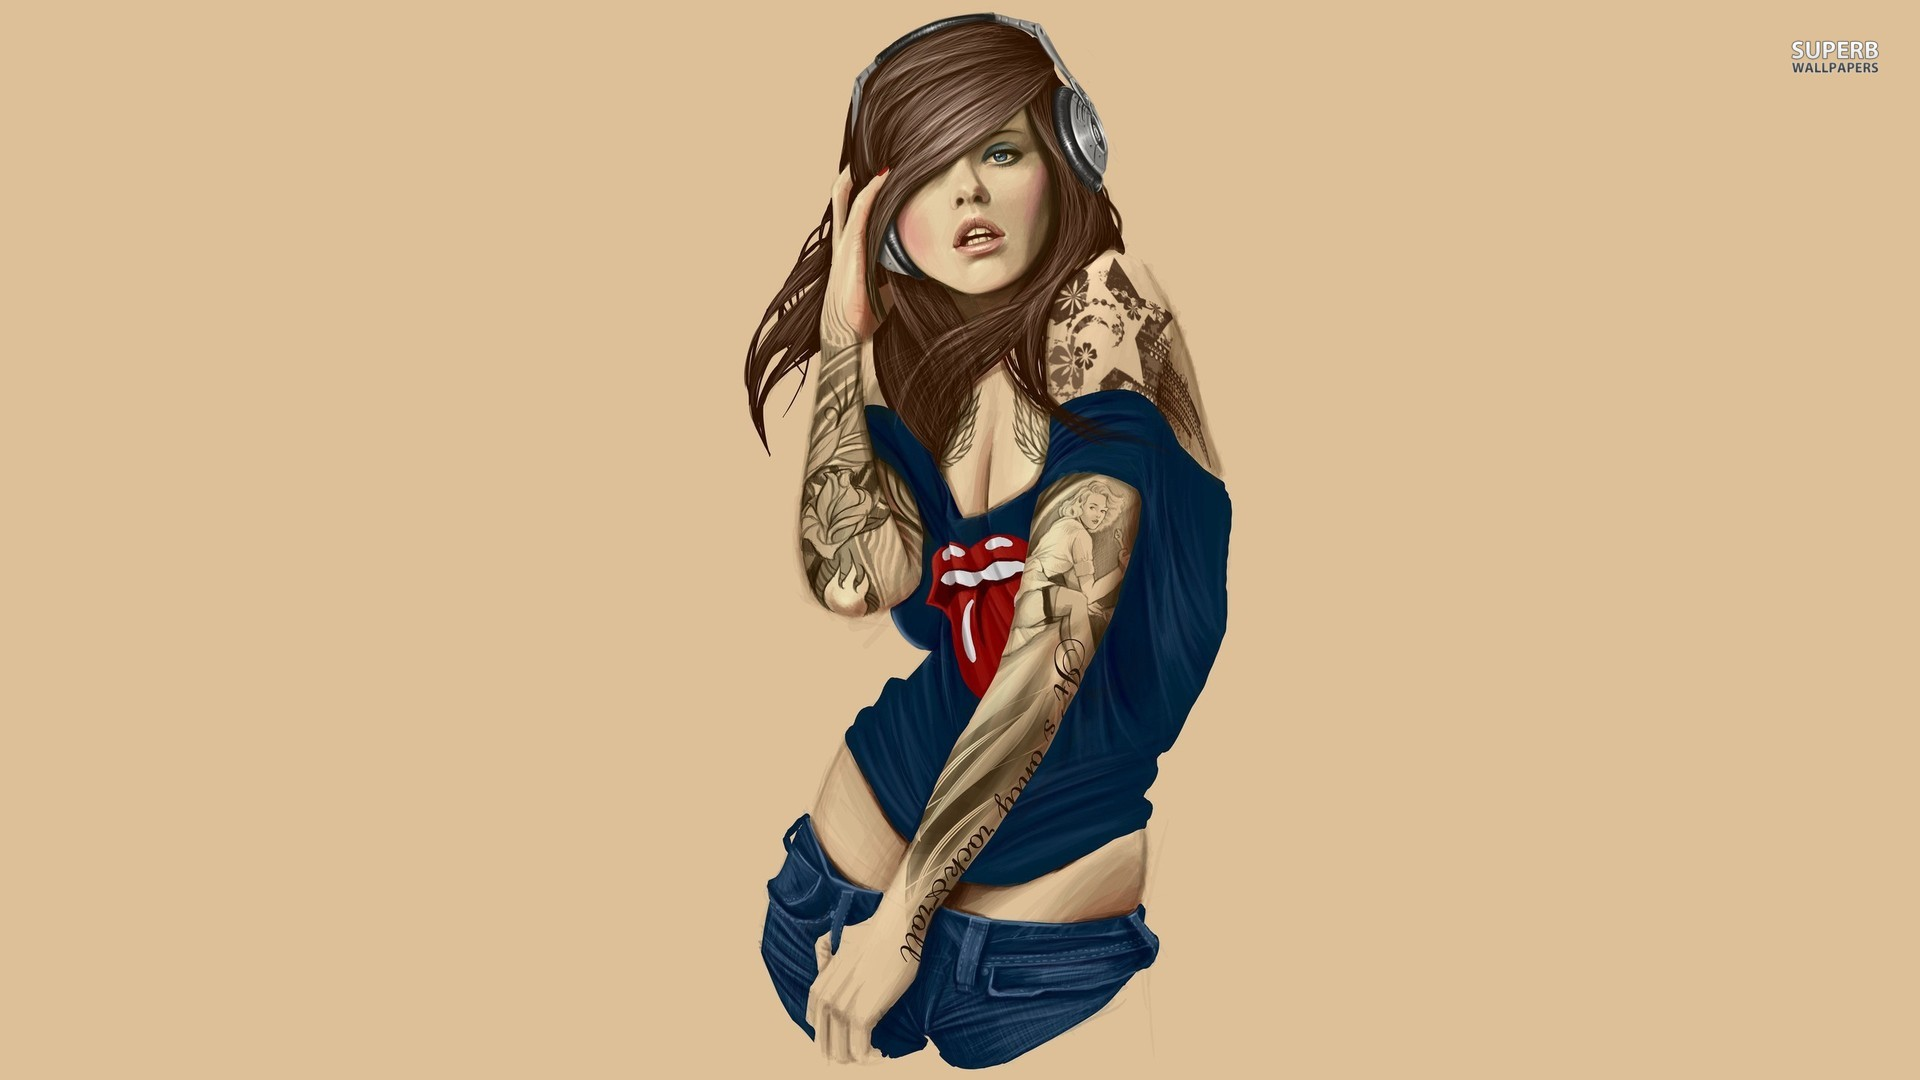 tattooed girl with headphones 17789 1920x1080 HD Wallpaper